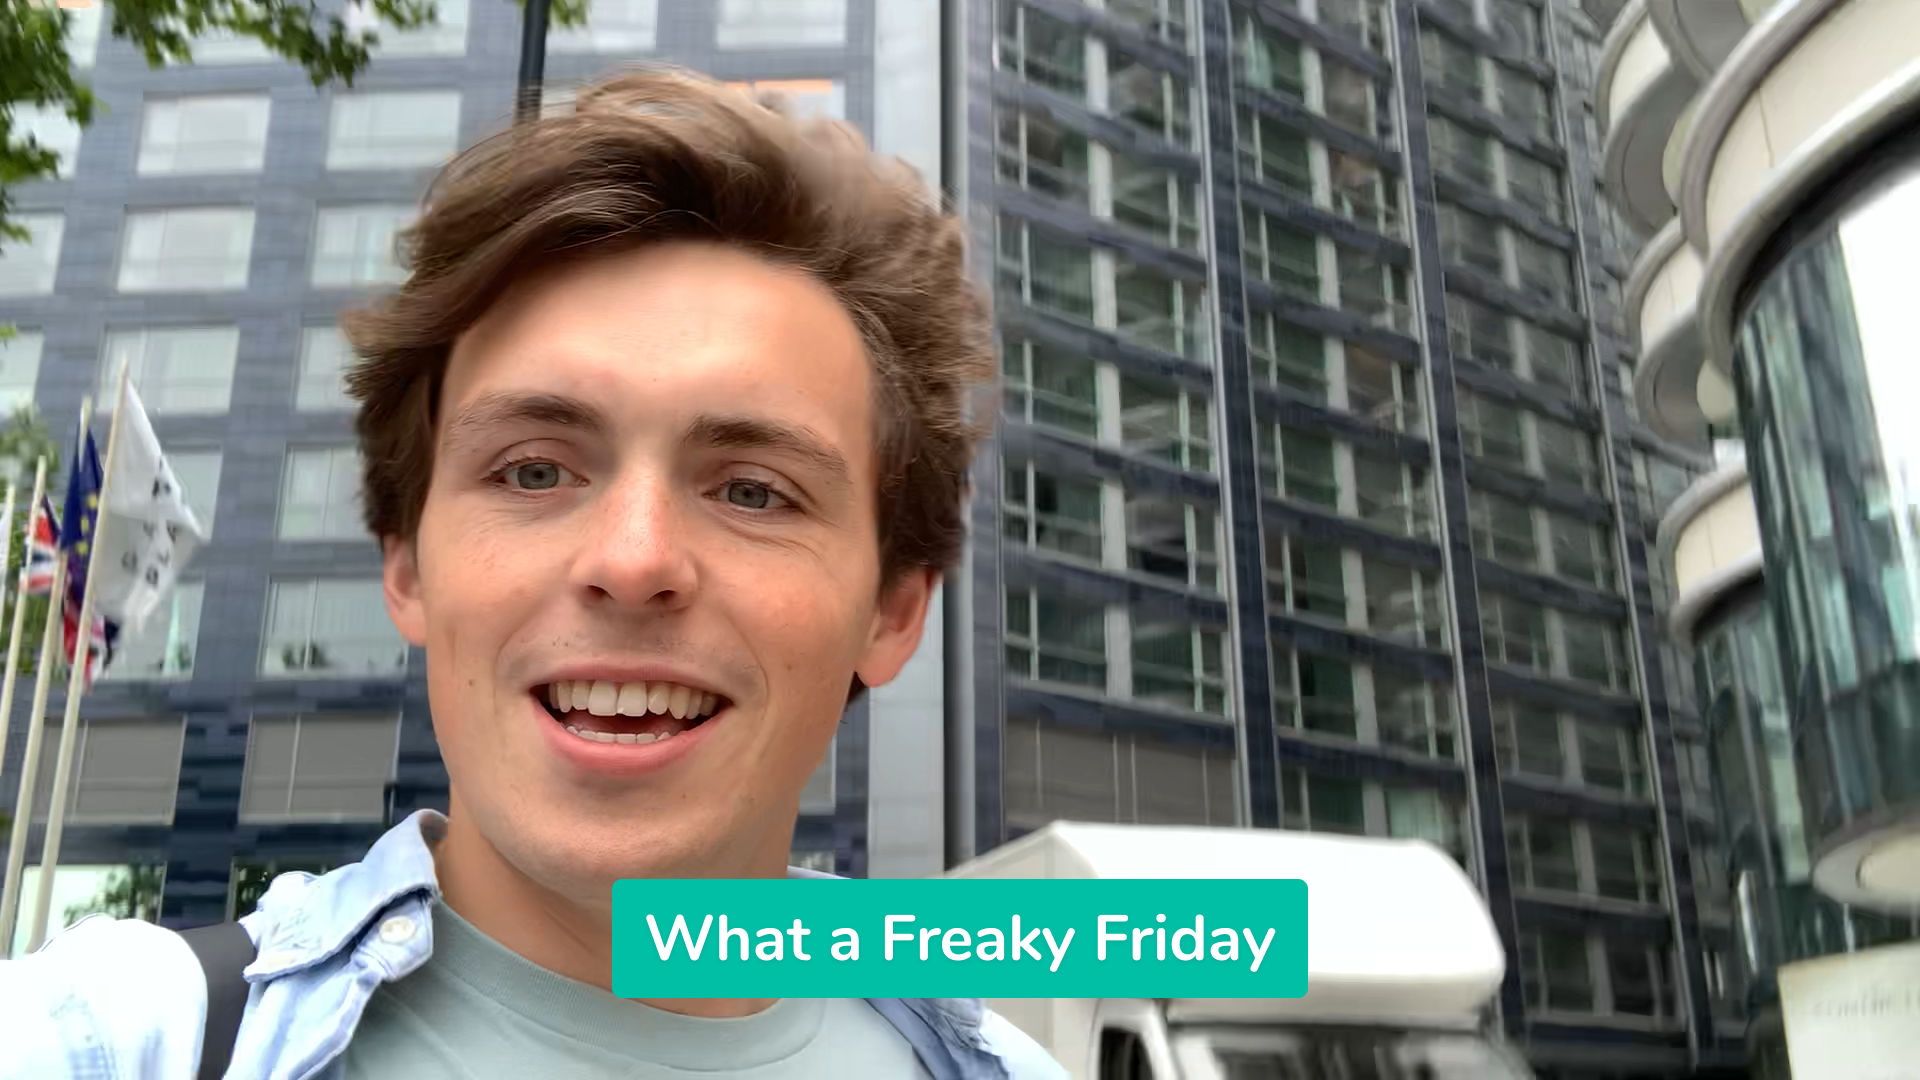 What a freaky friday